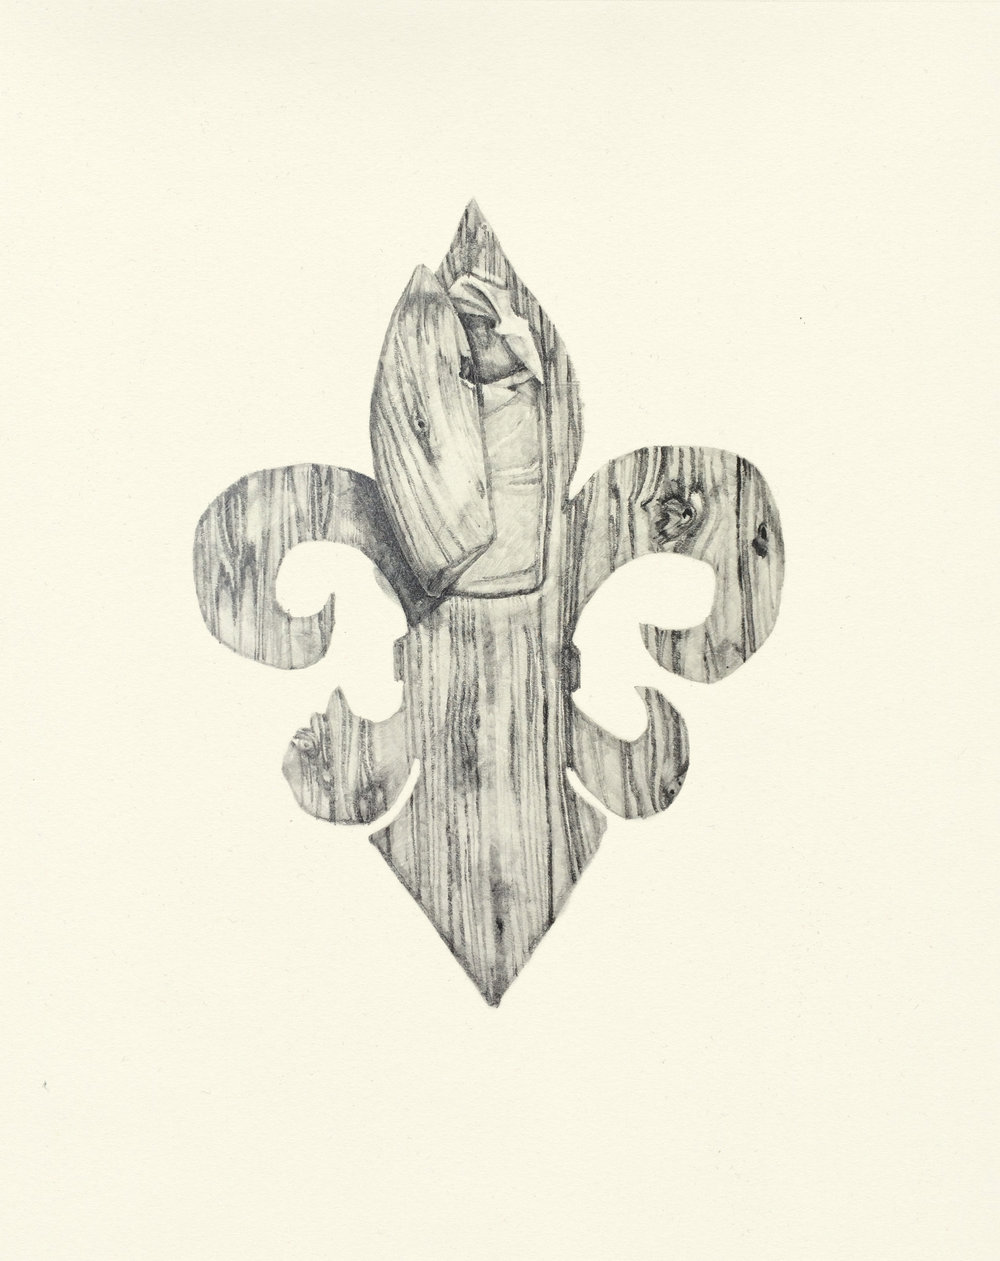 My Boyfriend is a Peacekeeper xxx  | graphite on paper | 9.5INx12IN    Excerpt from My Boyfriend is a Peacekeeper Book ii : I draw coffins in my spare time....Can you imagine burying me in a fleur-de-lis? A baby blue beret?